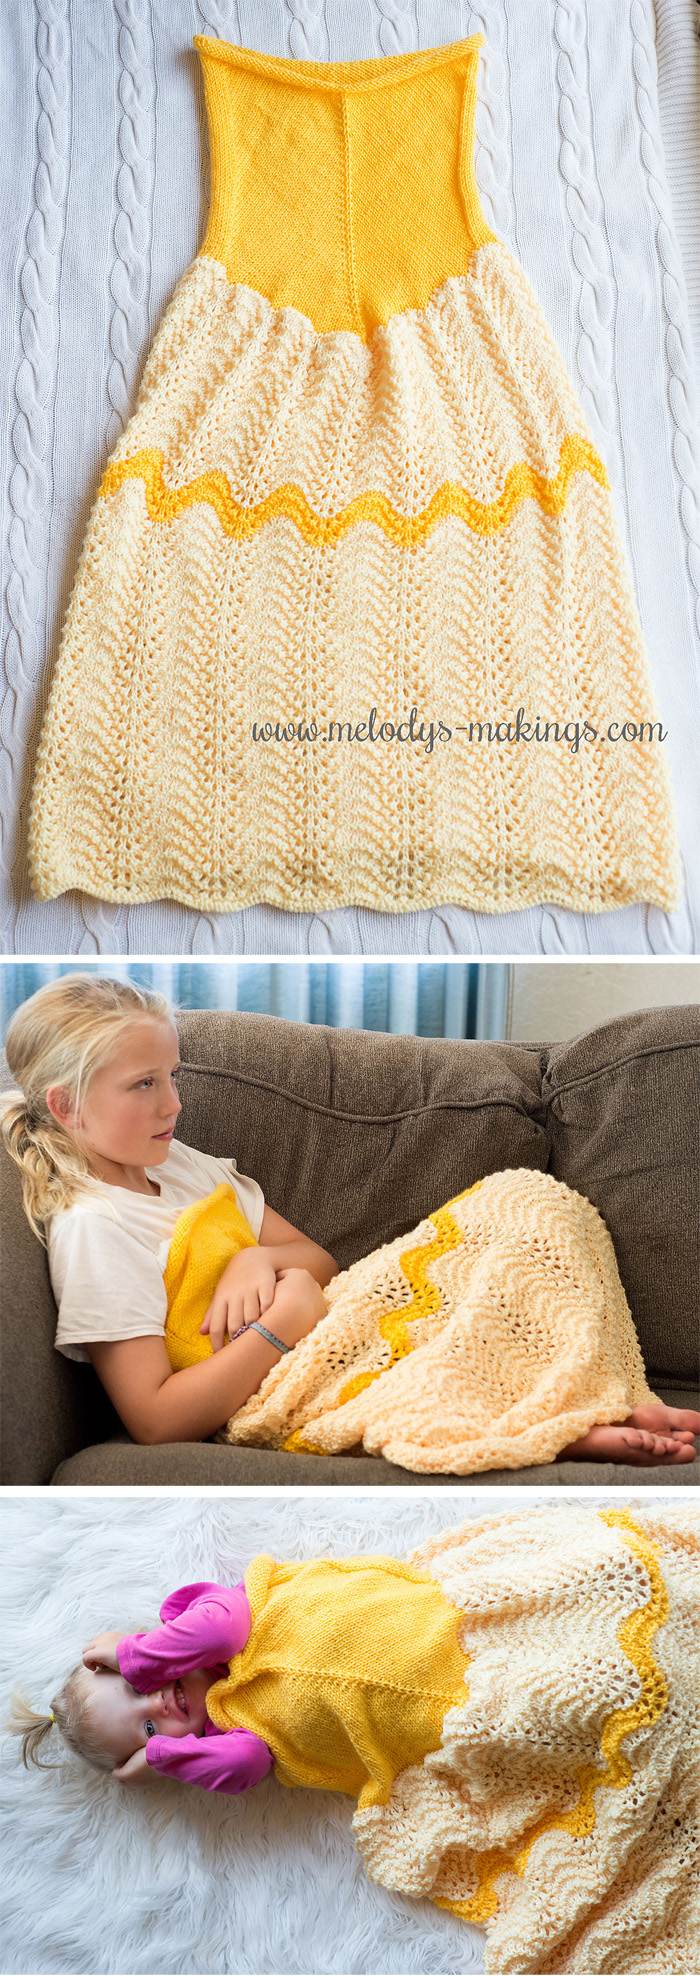 Free Knitting Pattern for Princess Dress Blanket